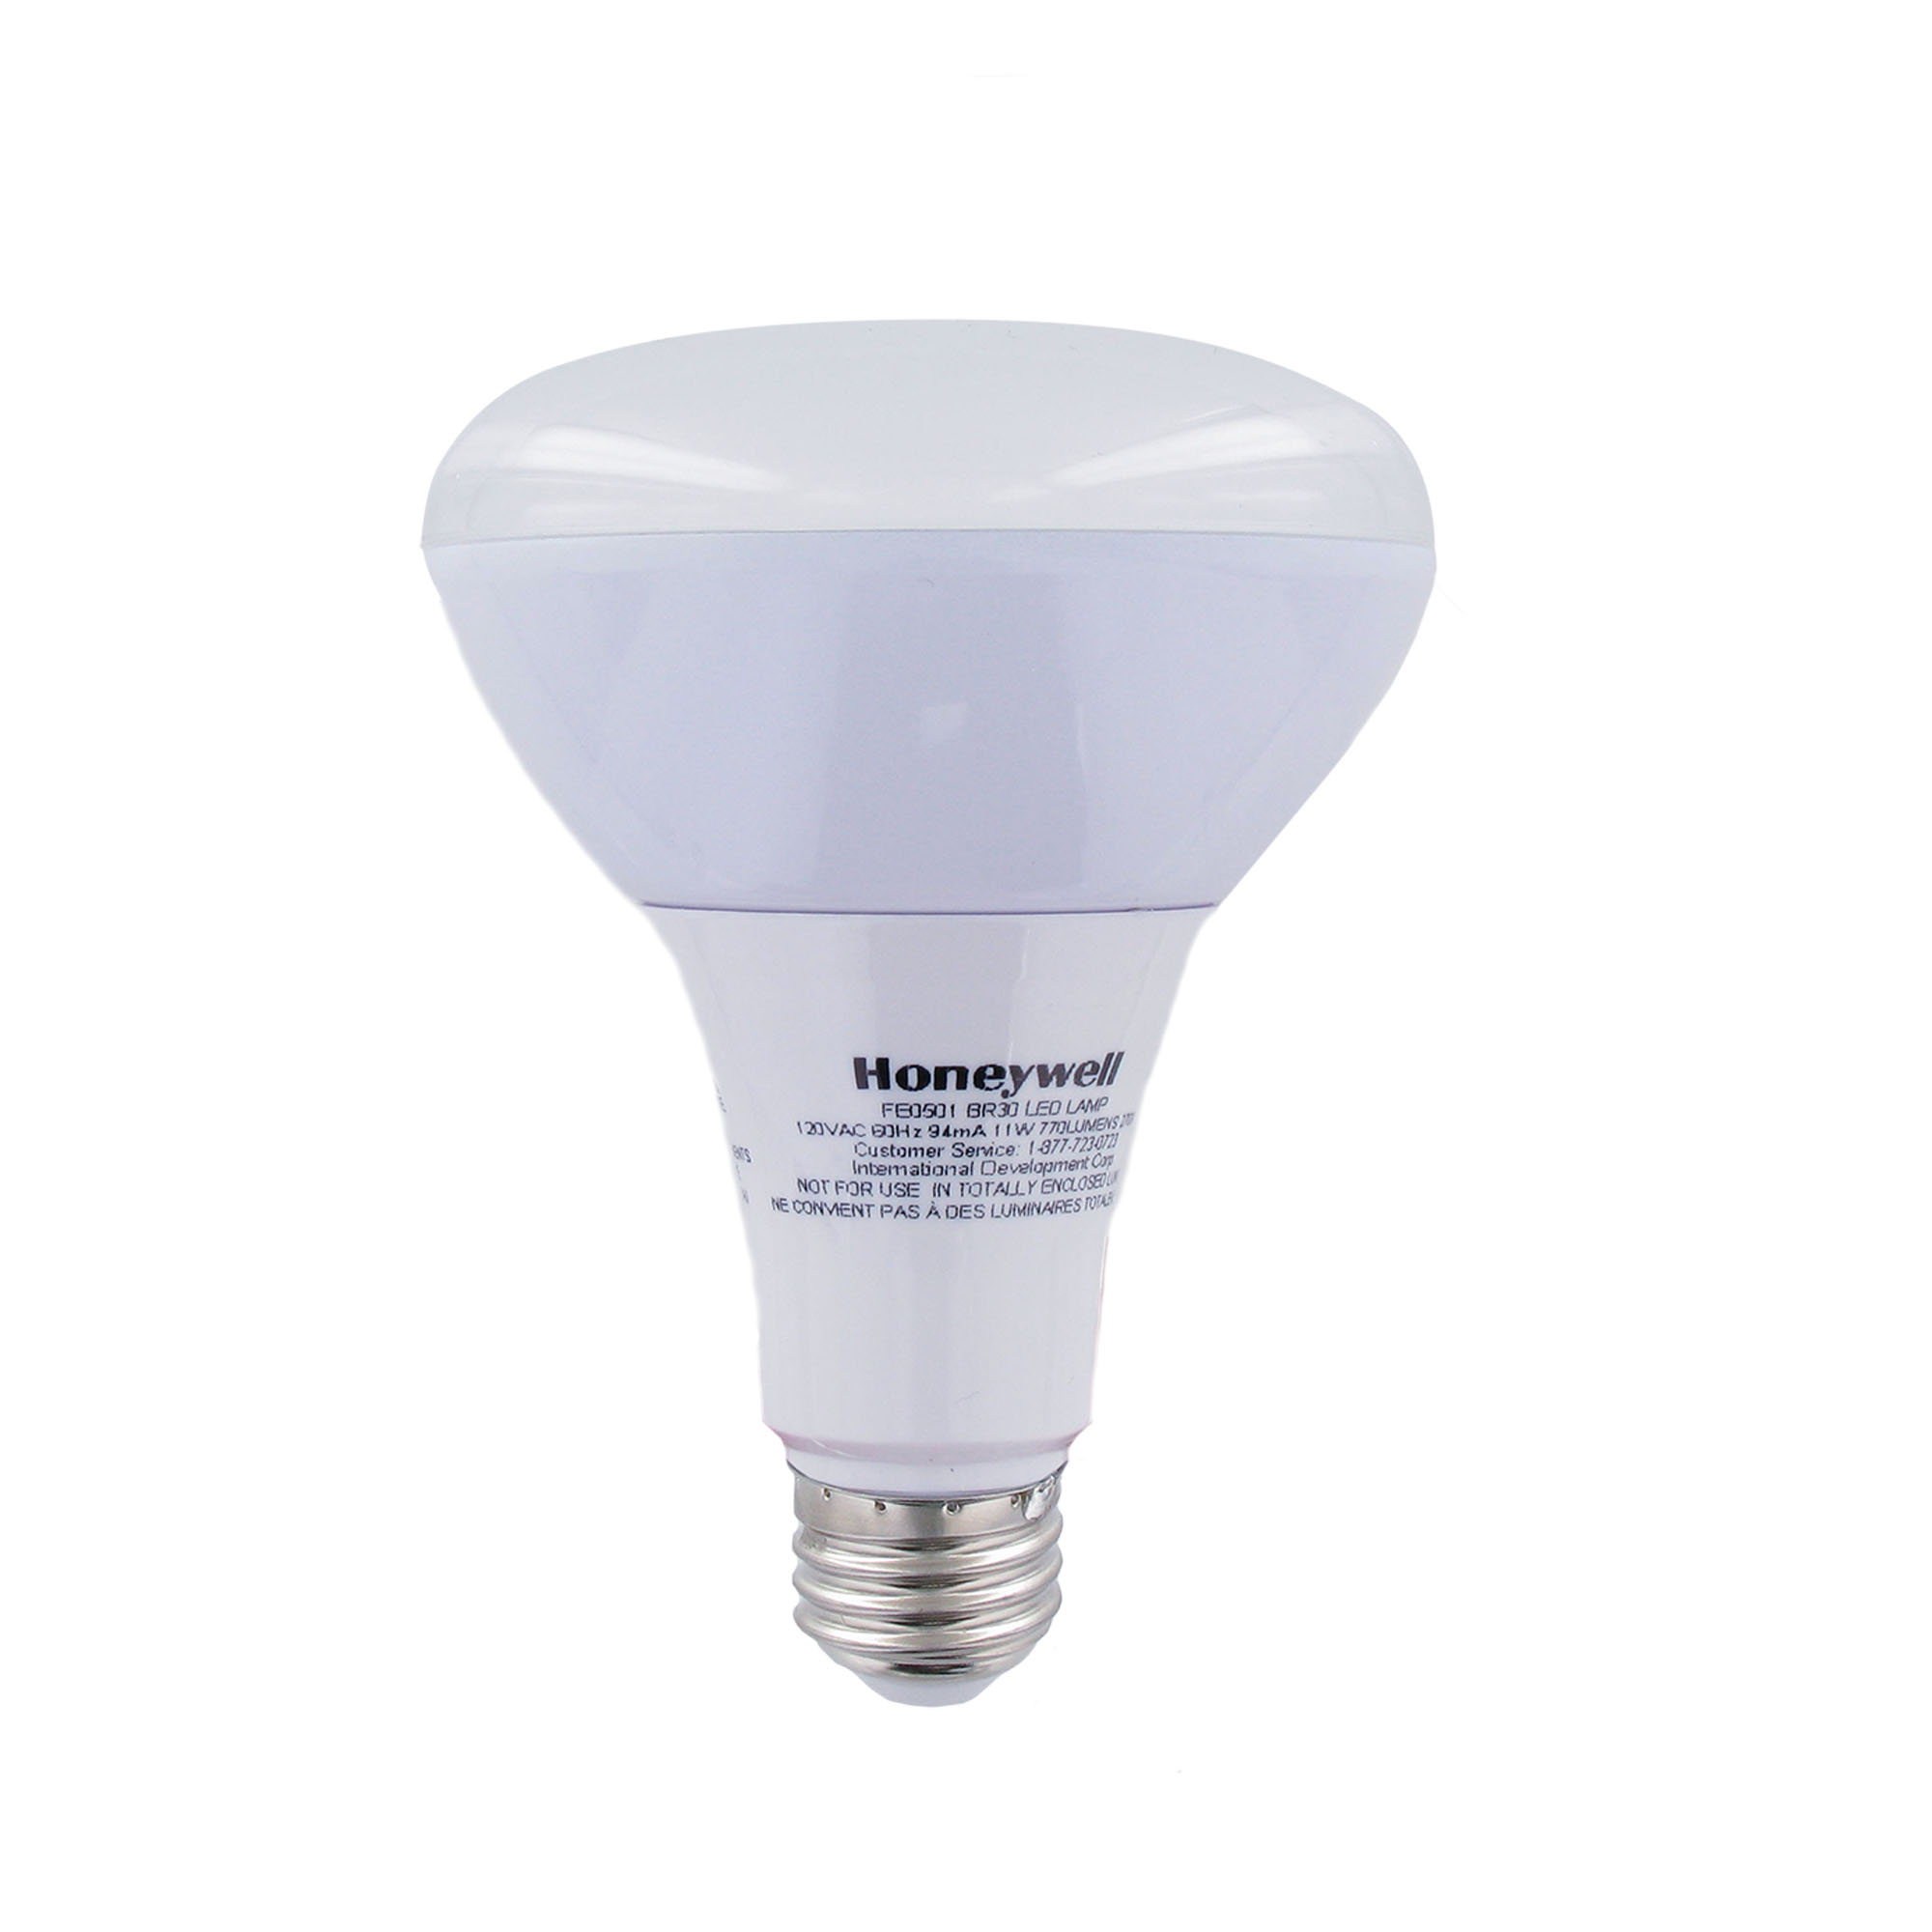 Honeywell 65W Equivalent BR30 Dimmable LED Light Bulb - 2 Pack, FE0501